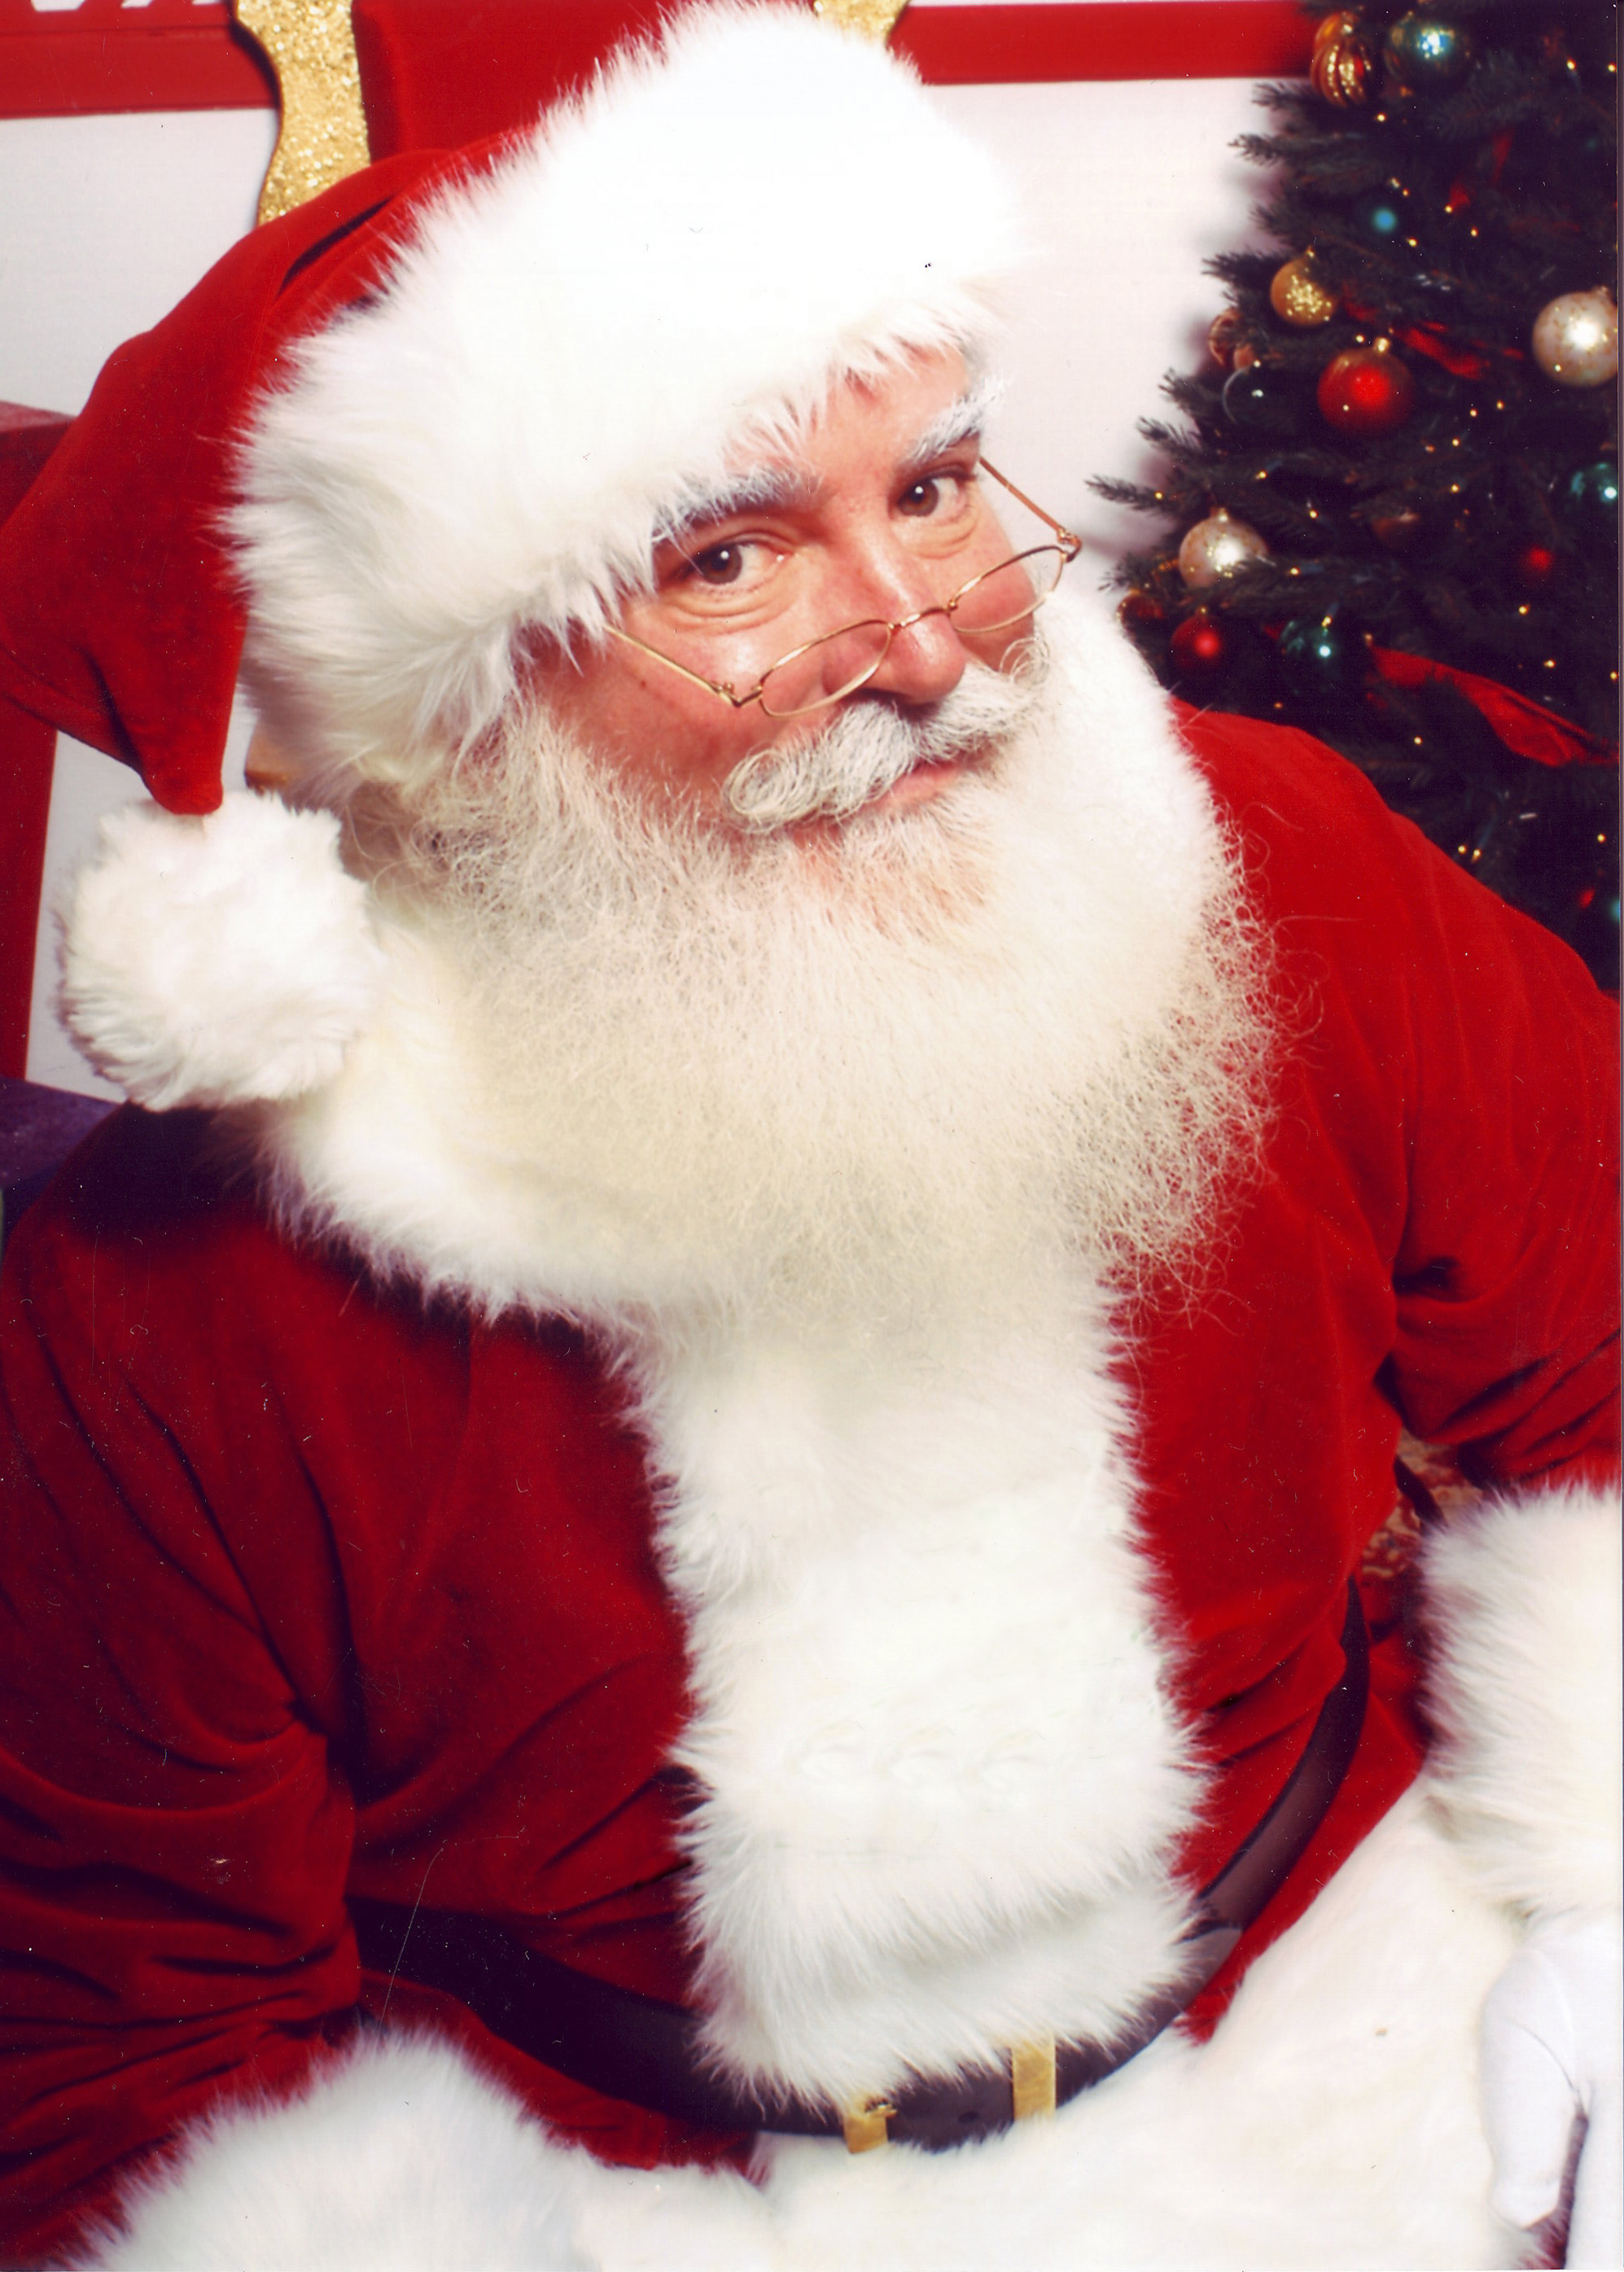 Jonathan G Meath portrays Santa Claus 14 Christmas Traditions For Your Family